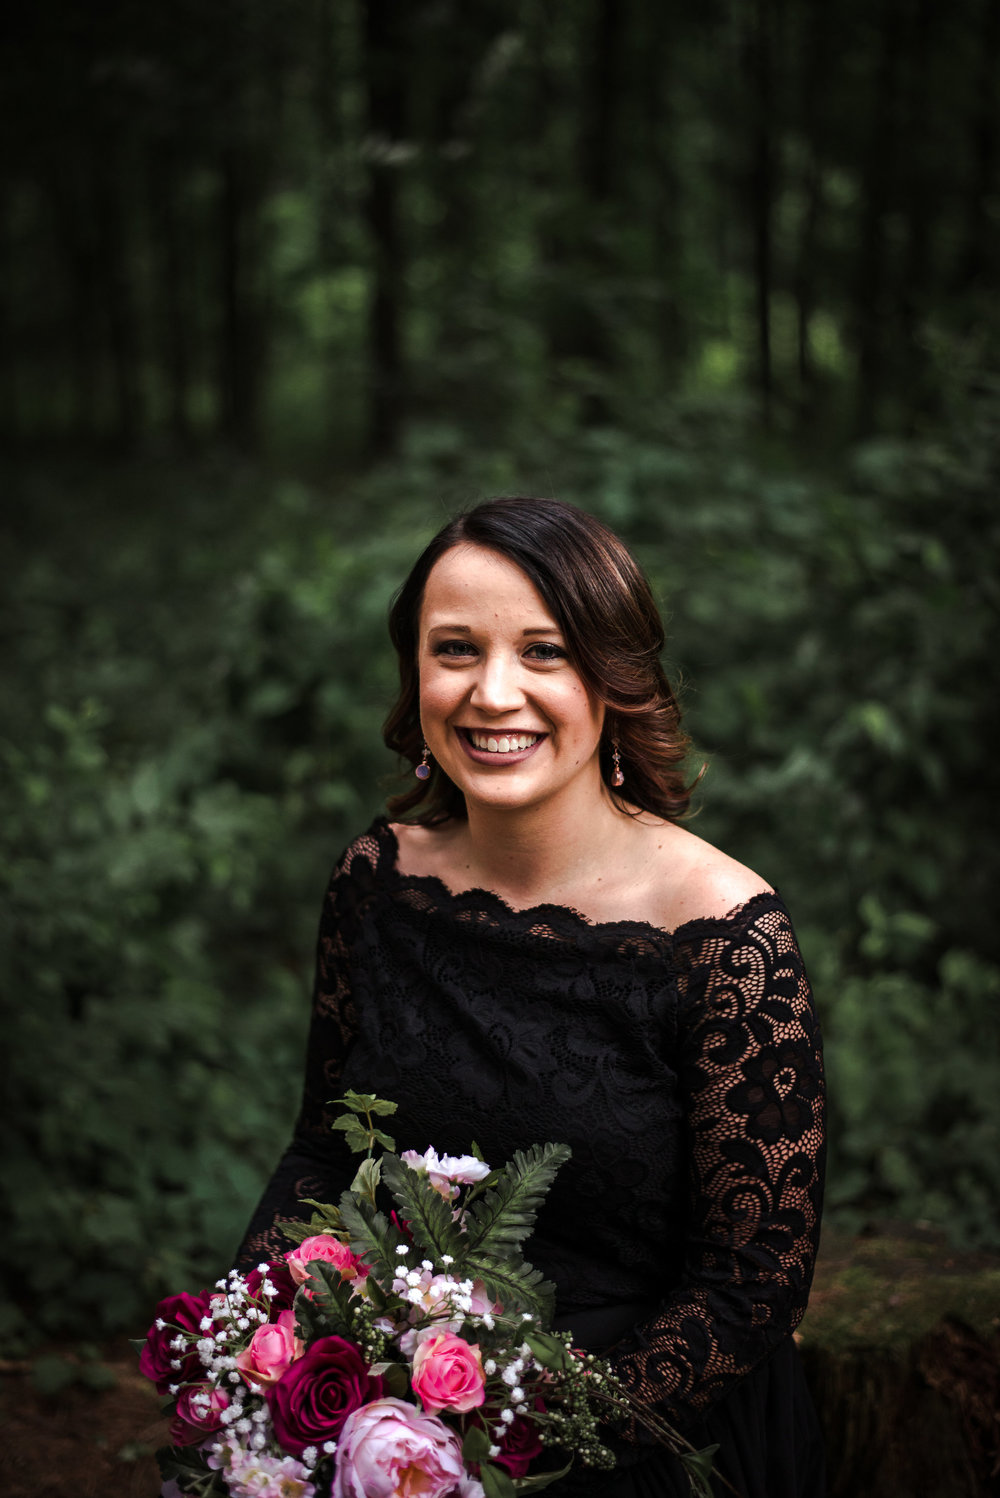 Moody Wedding - Black Lace Wedding Dress - Moody Pink + White Wedding Bouquet -- Wedding Blog - The Overwhelmed Bride